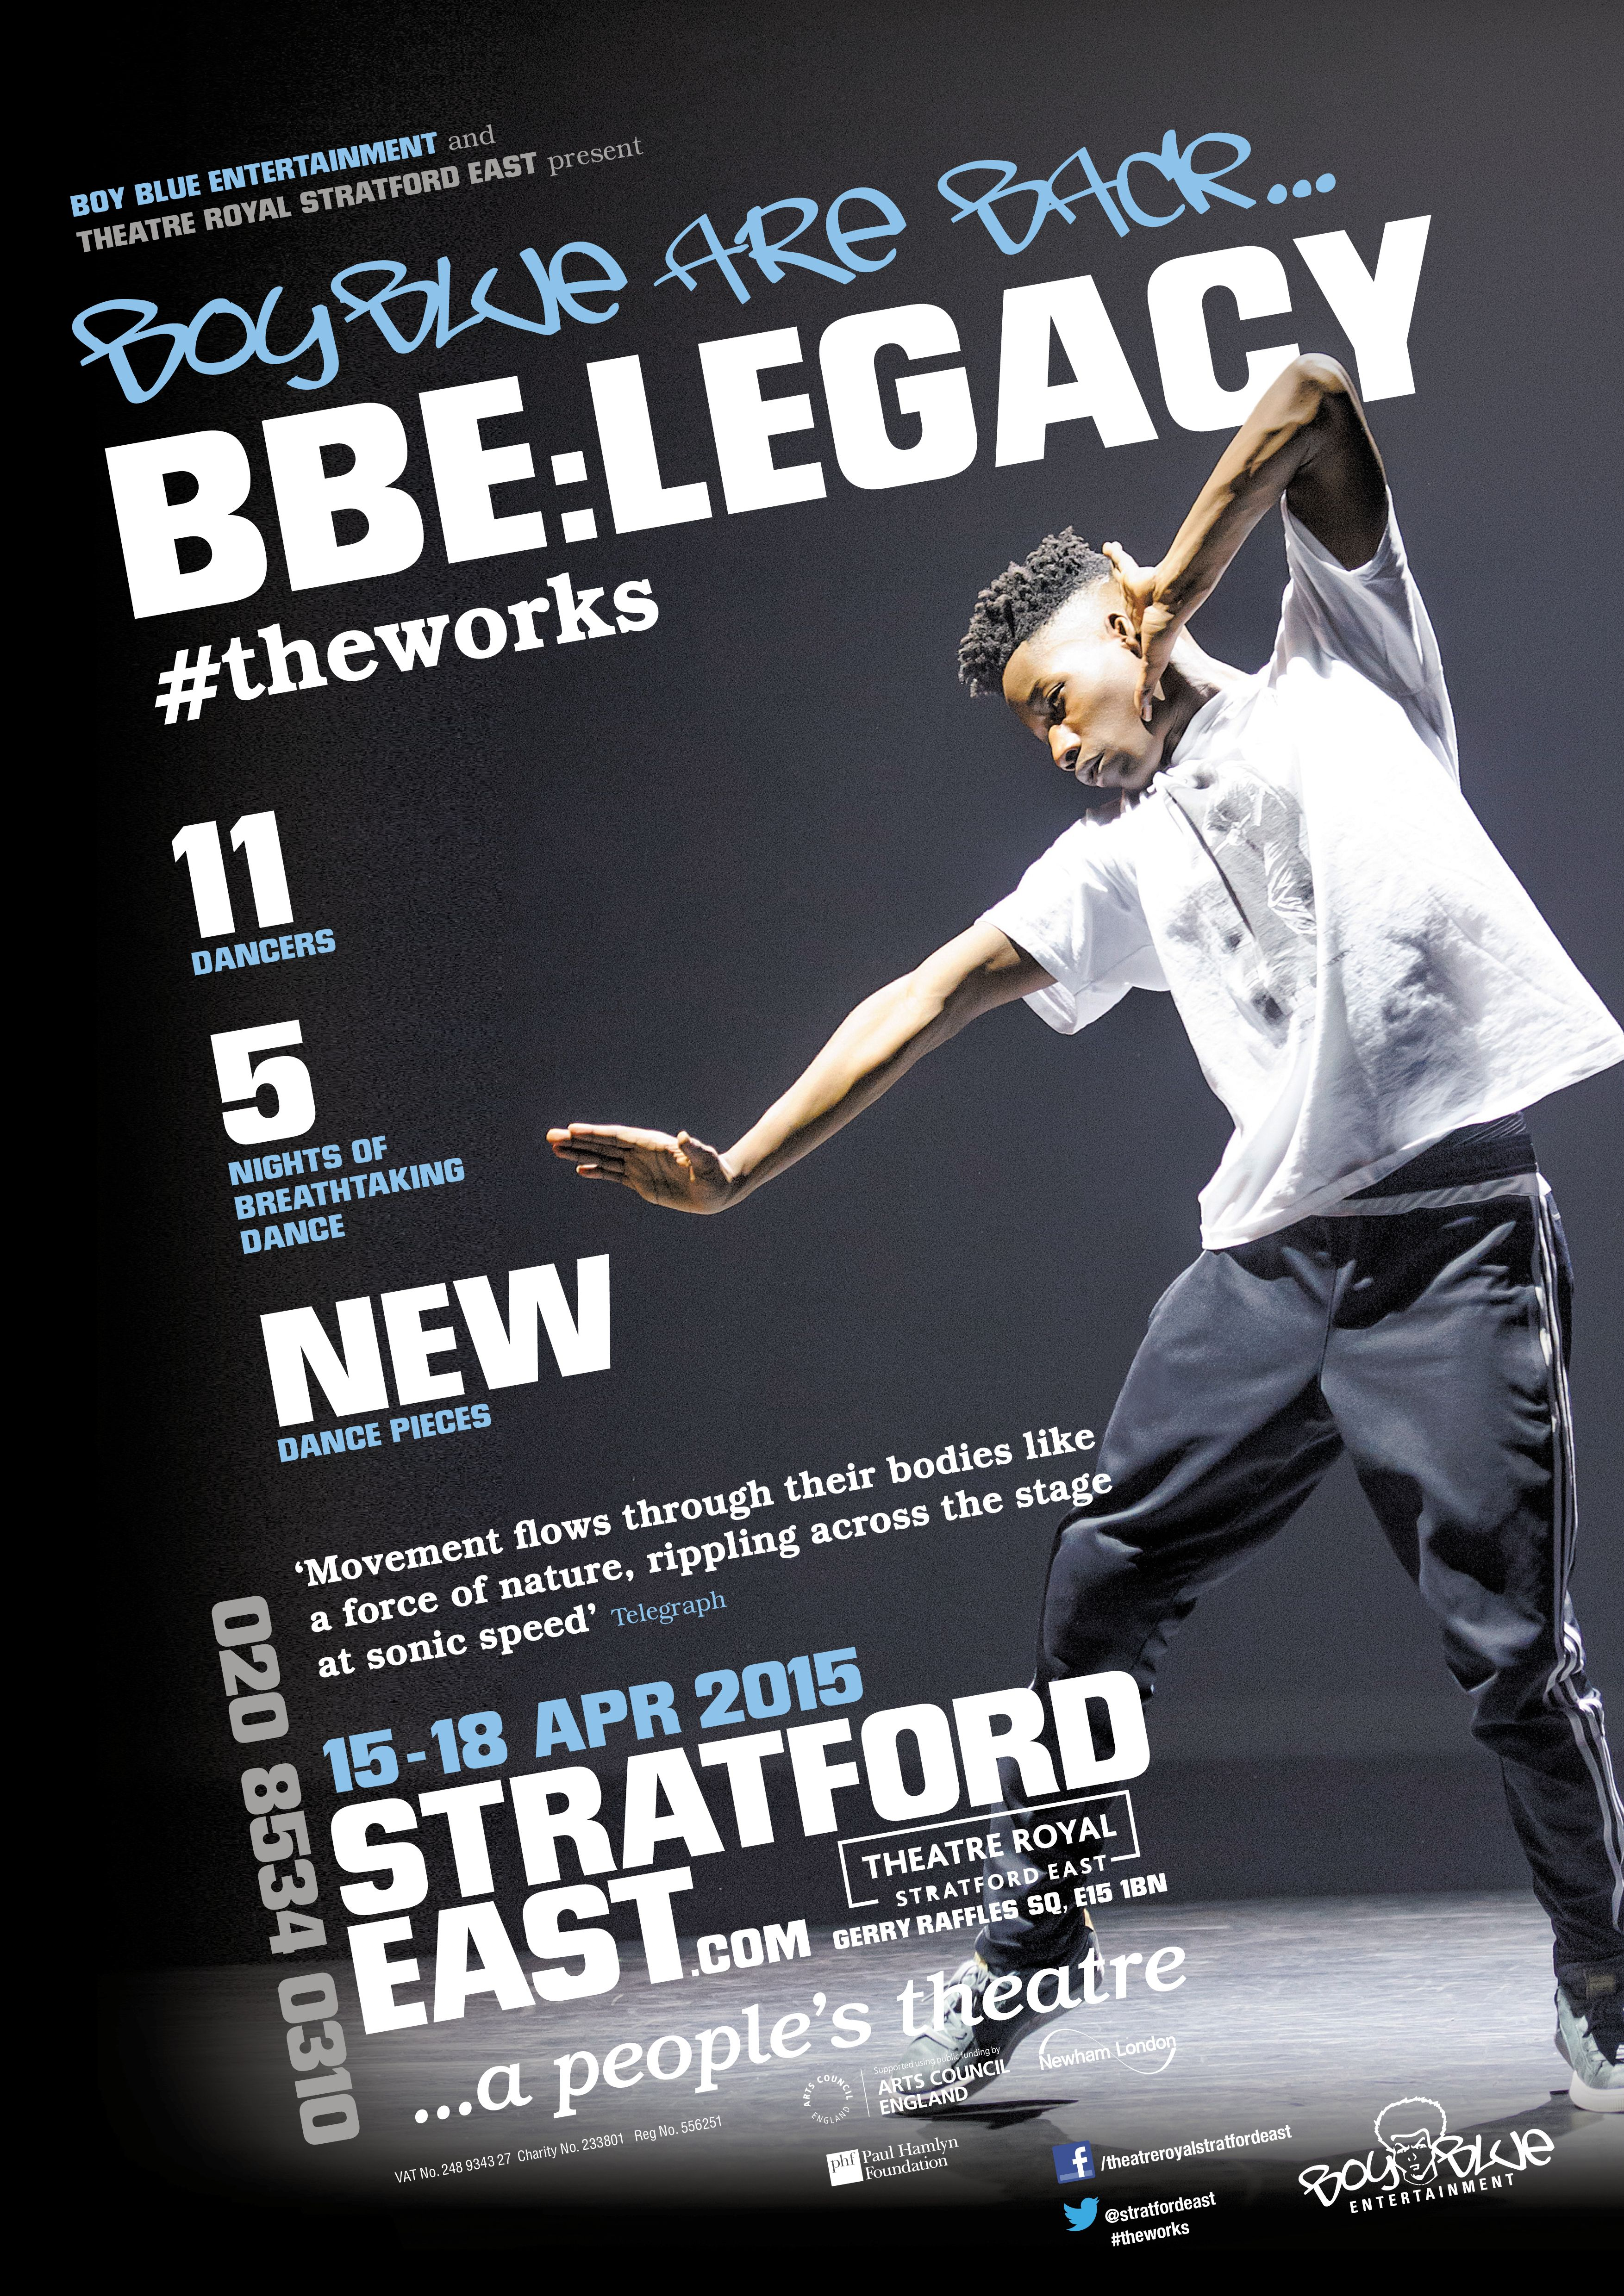 design of theatre poster for bbe legacy stratford east theatre in